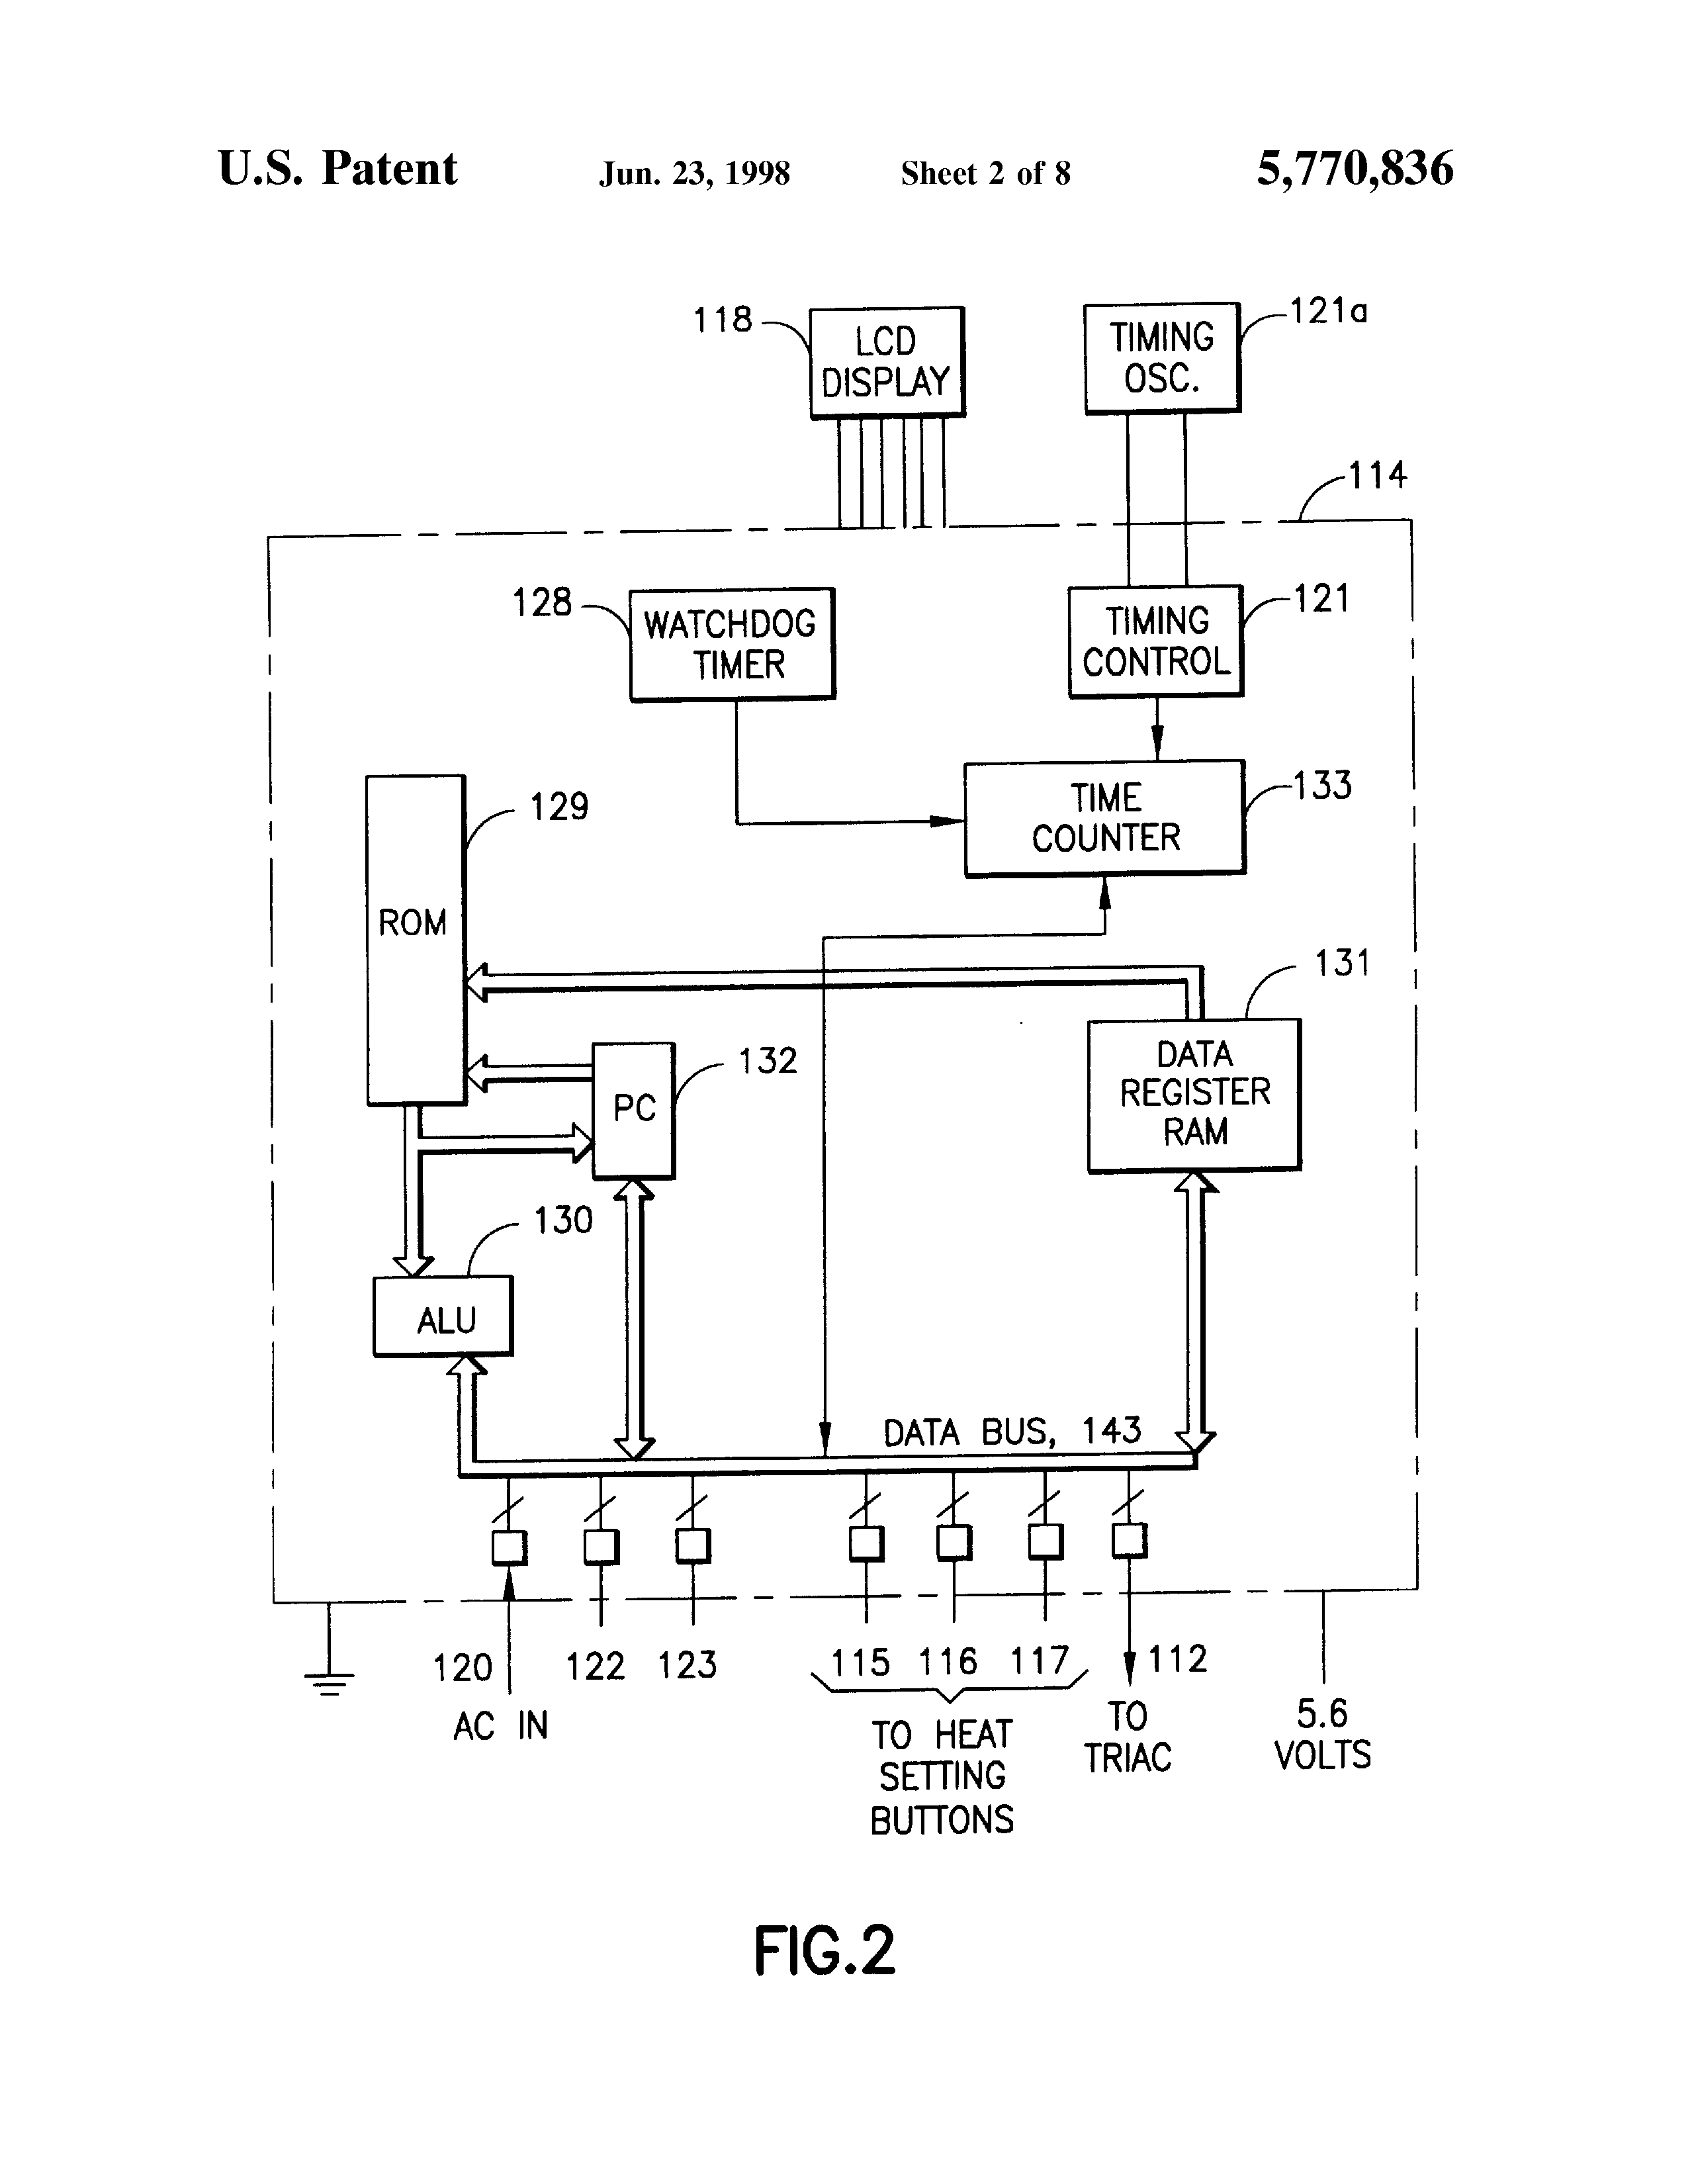 Patent Us5770836 - Resettable Safety Circuit For Ptc Electric Blankets And The Like